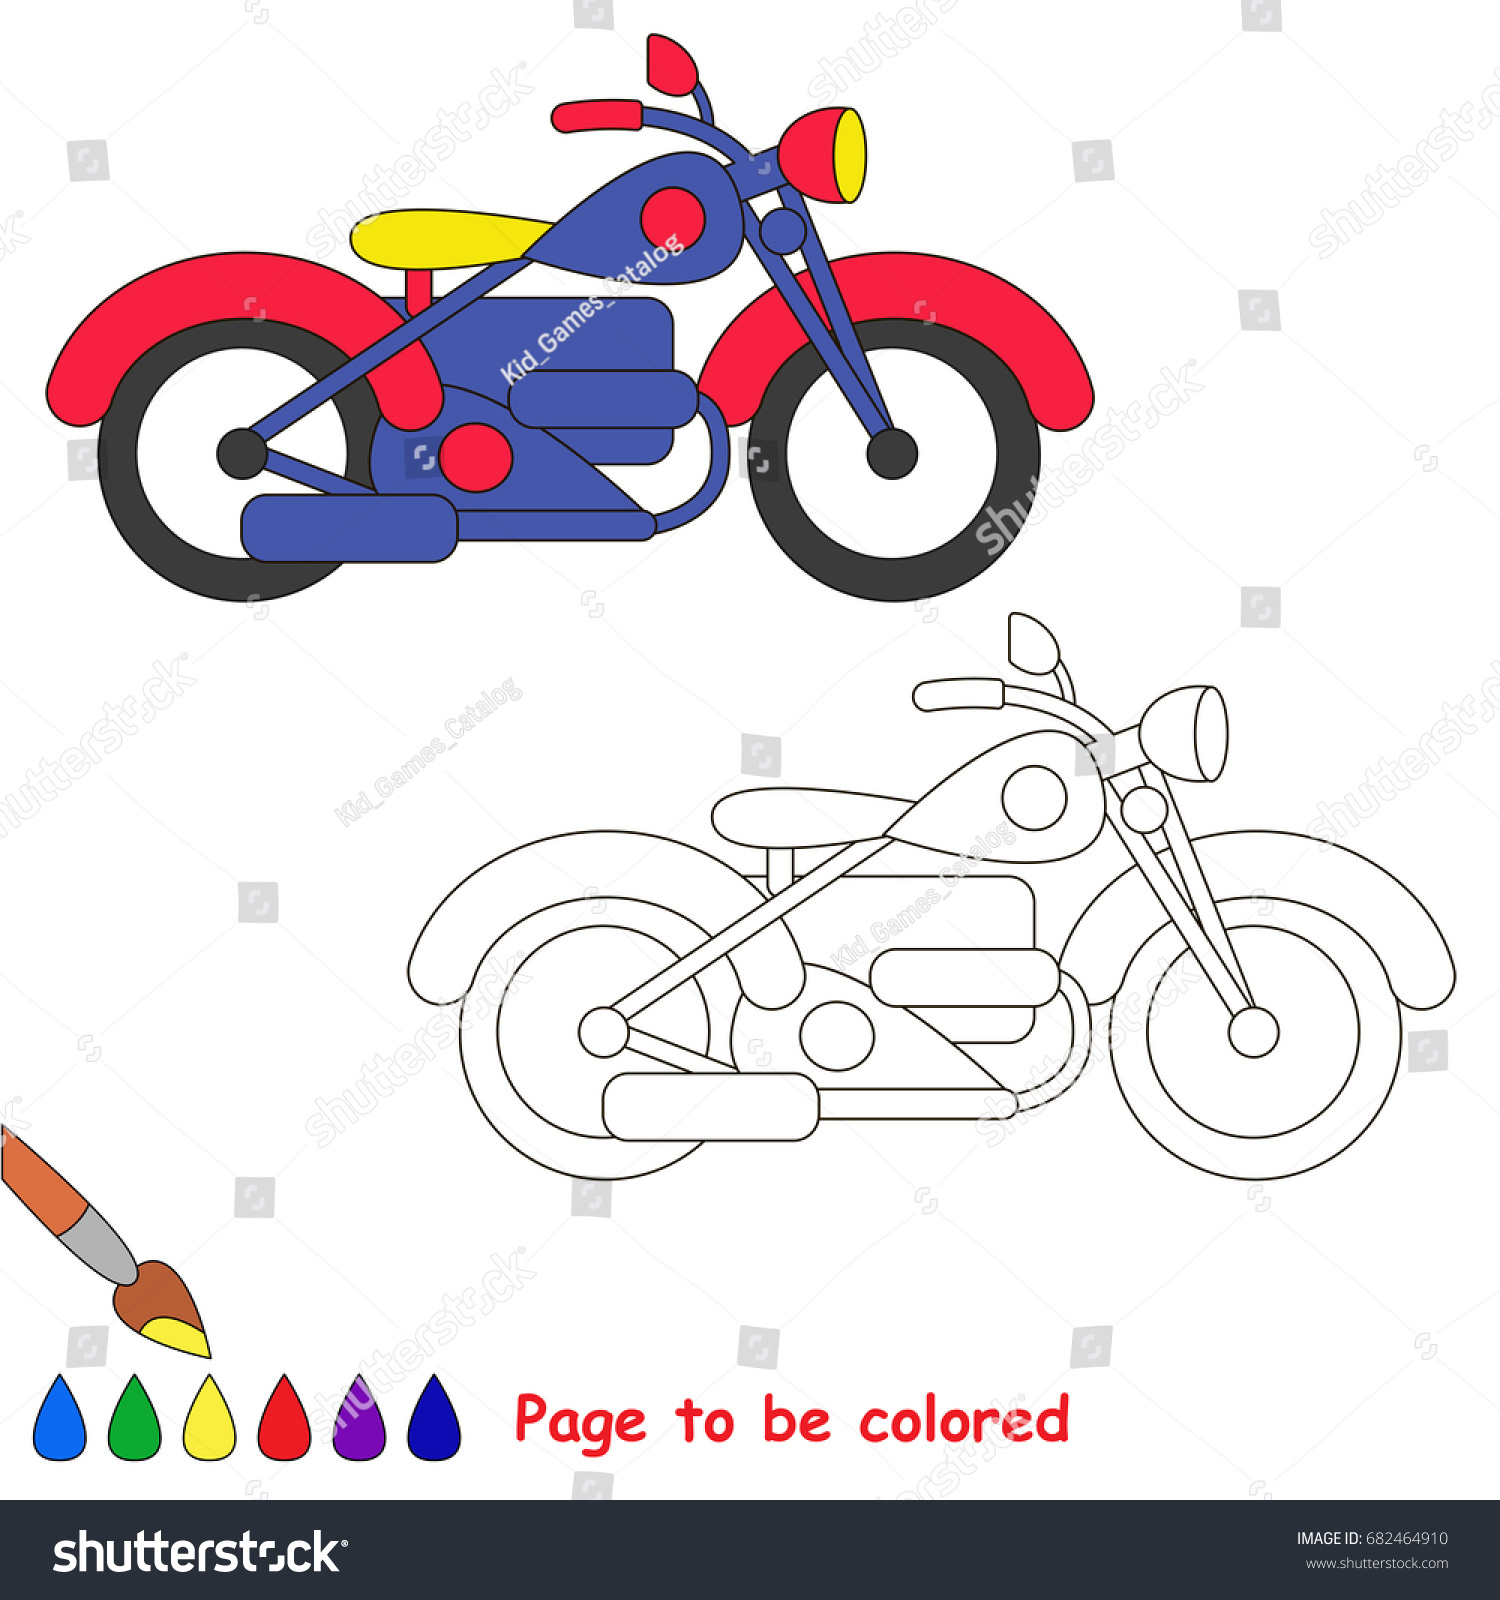 Coloring Vehicle For Children Transportation Illustration Kids Bicycle Vector